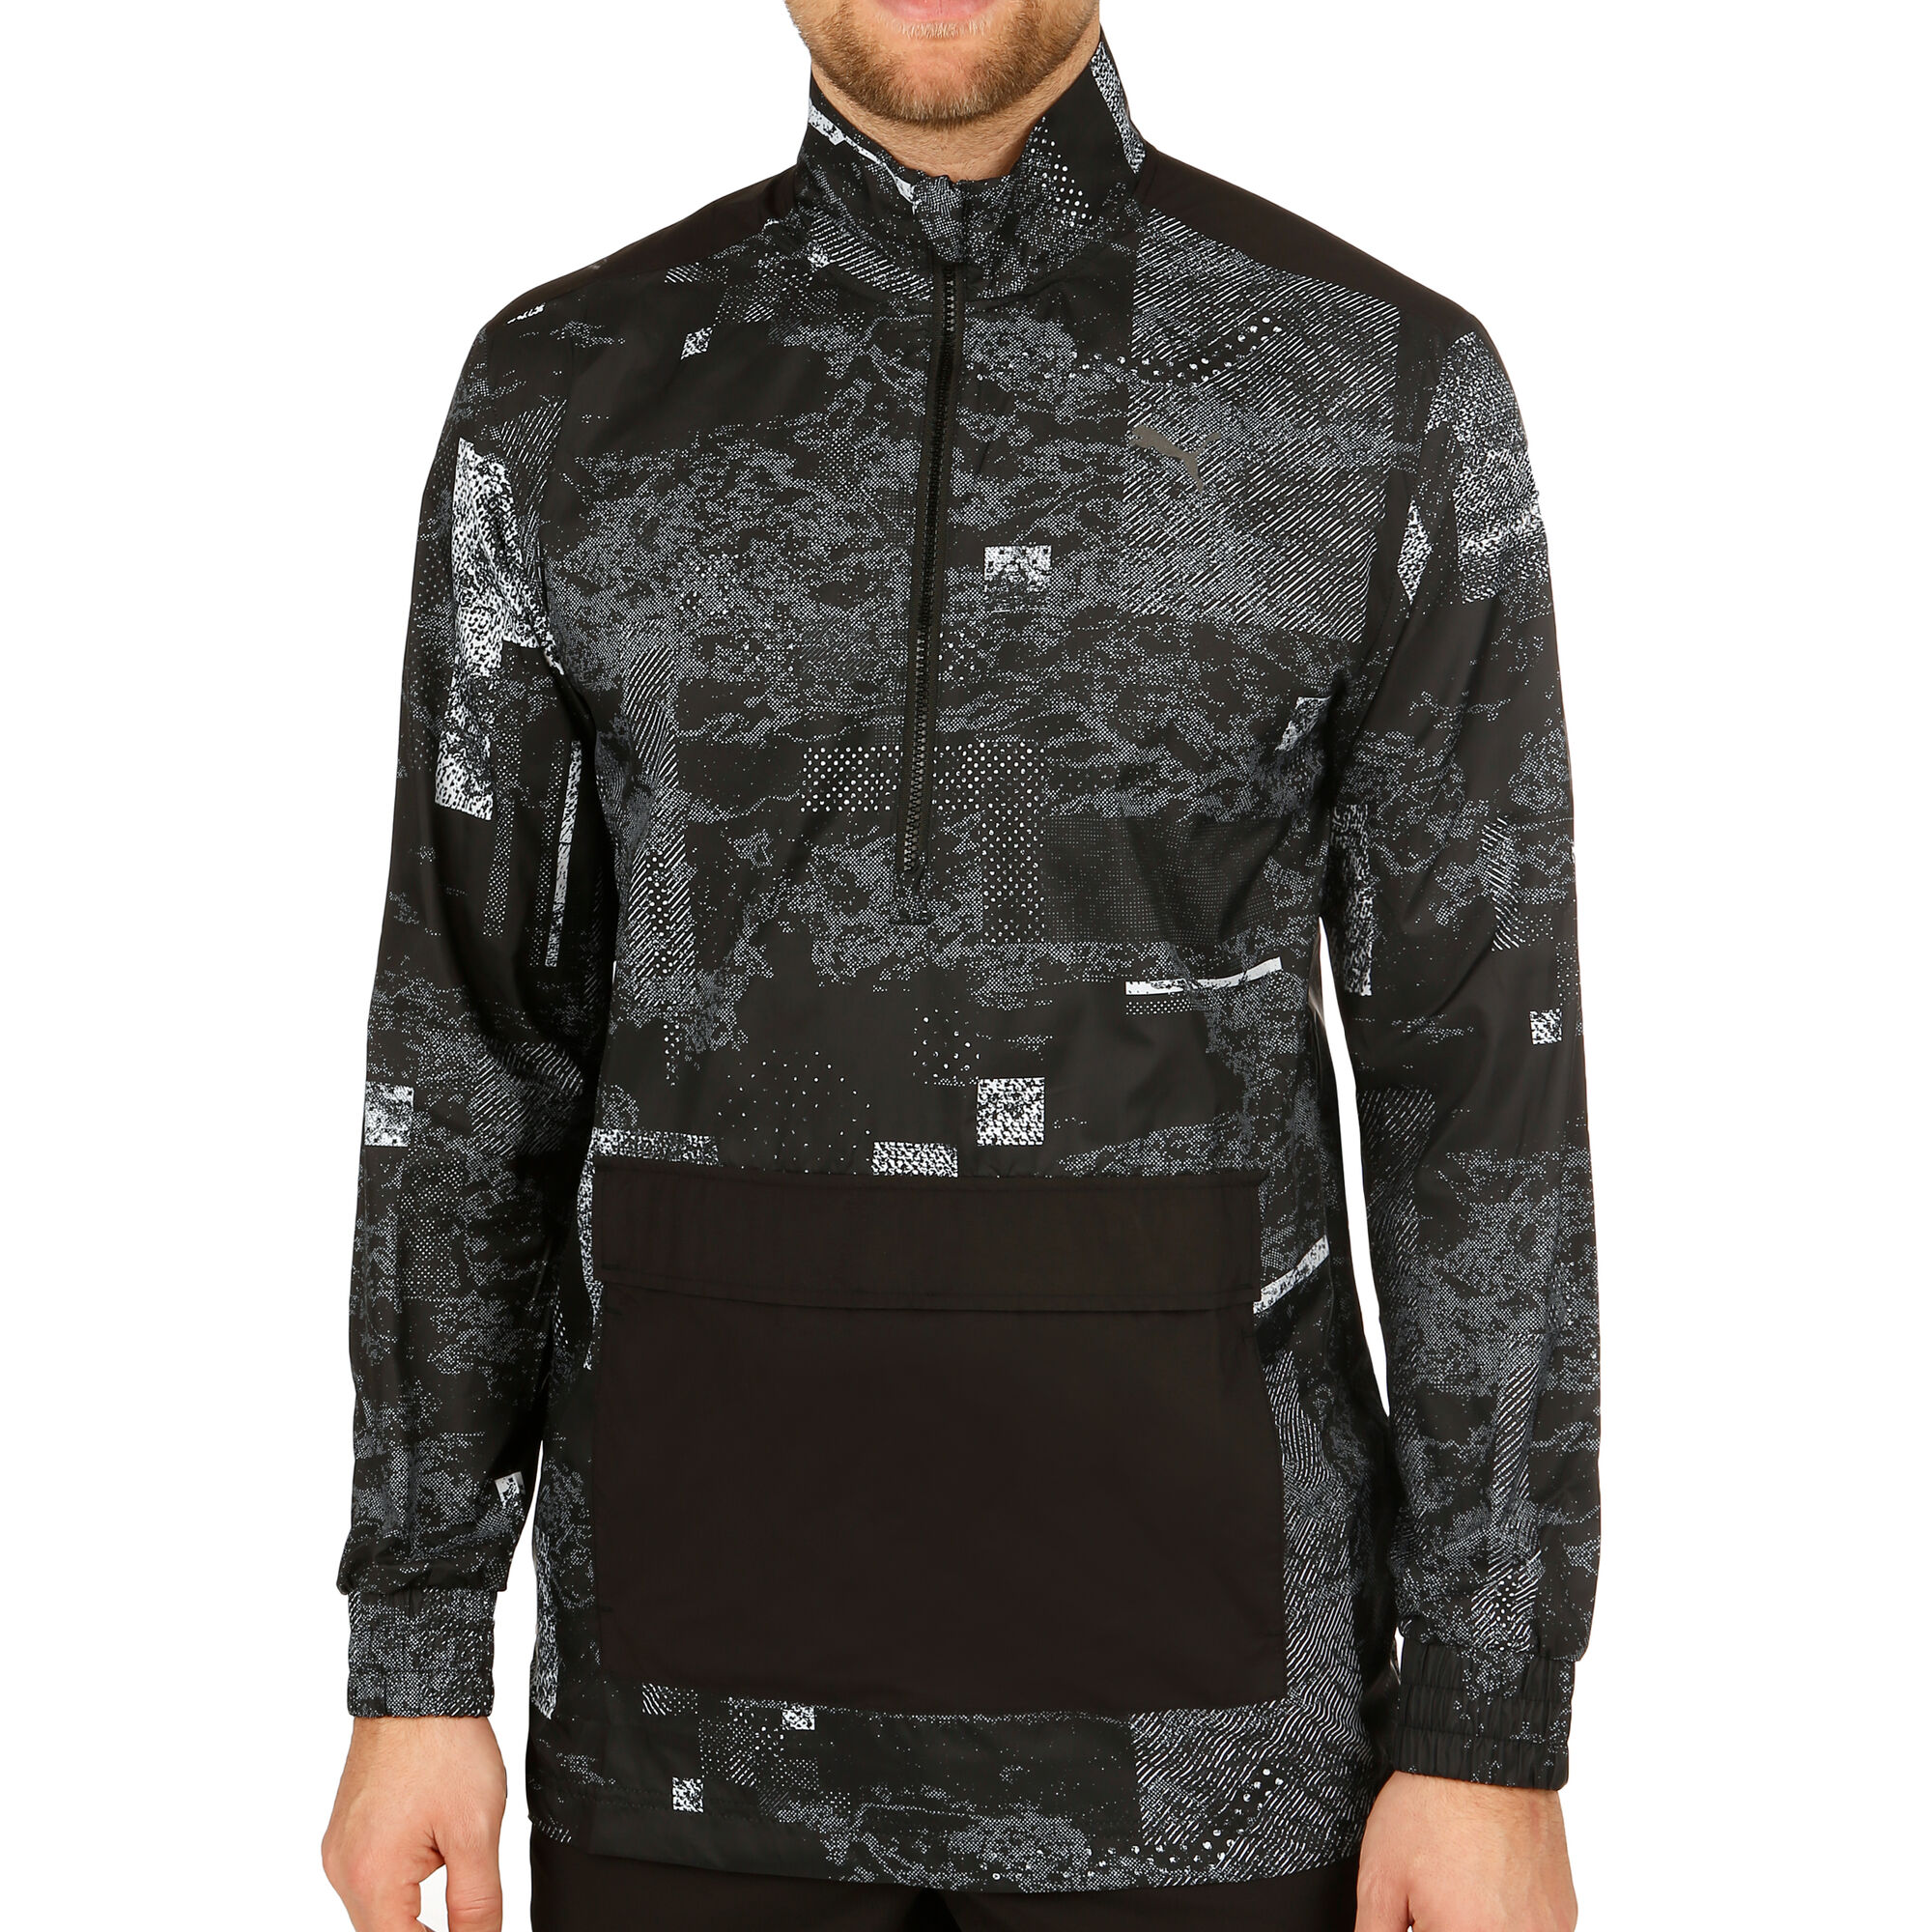 095f89e064de buy Puma Energy Windbreaker Running Jacket Men - Black